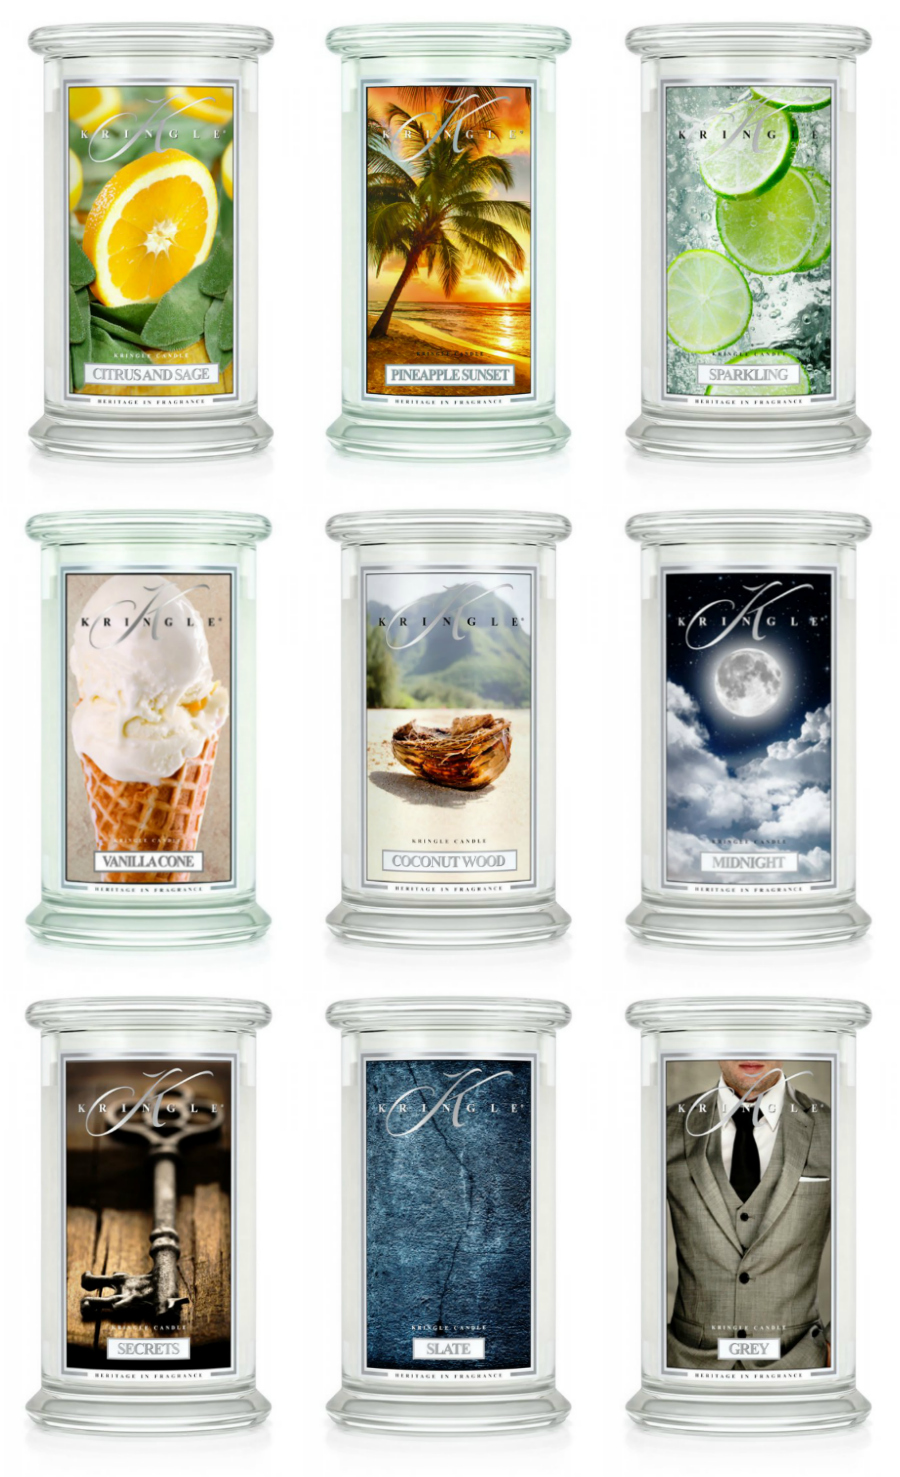 NEW Kringle Candle Fragrances at Love Aroma